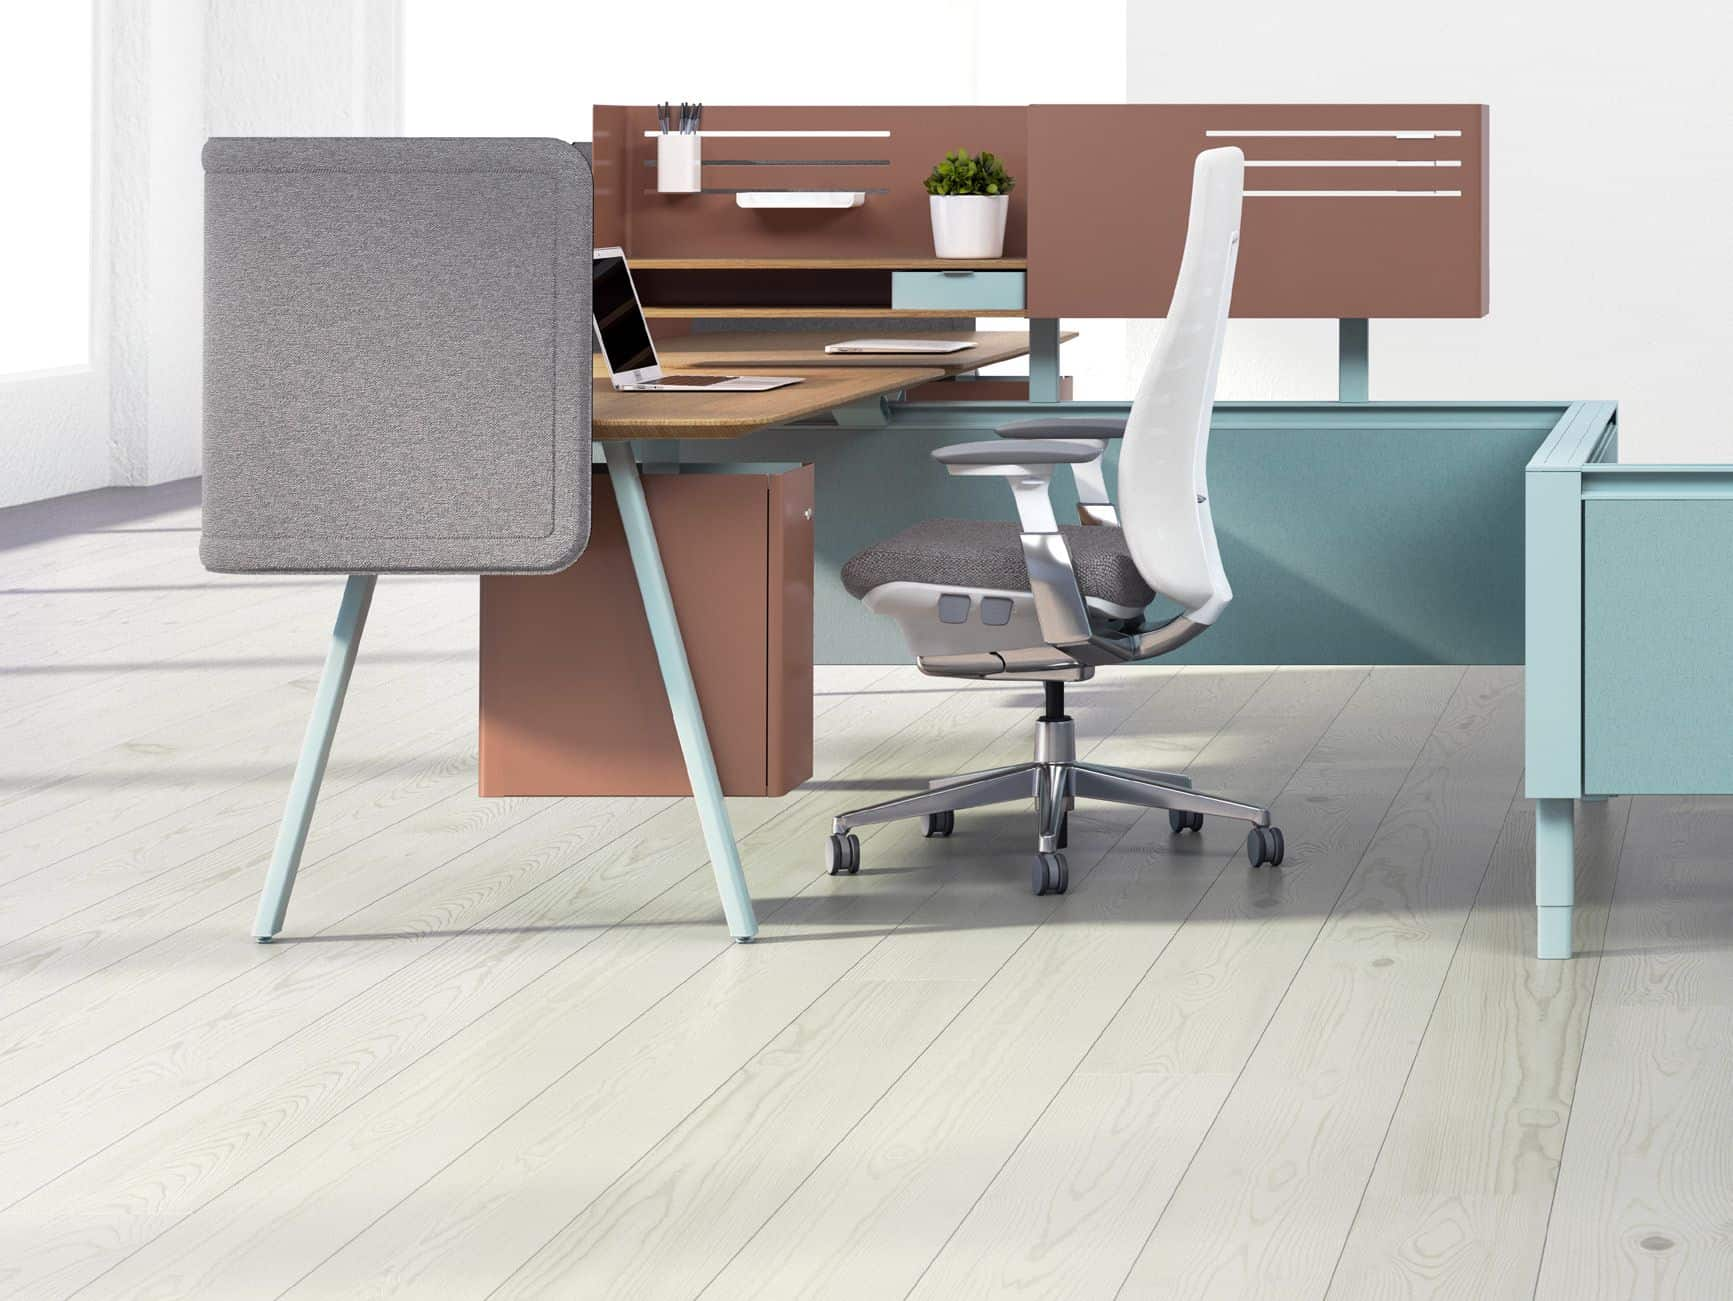 compose-connections-haworth- workspace- partition system 16